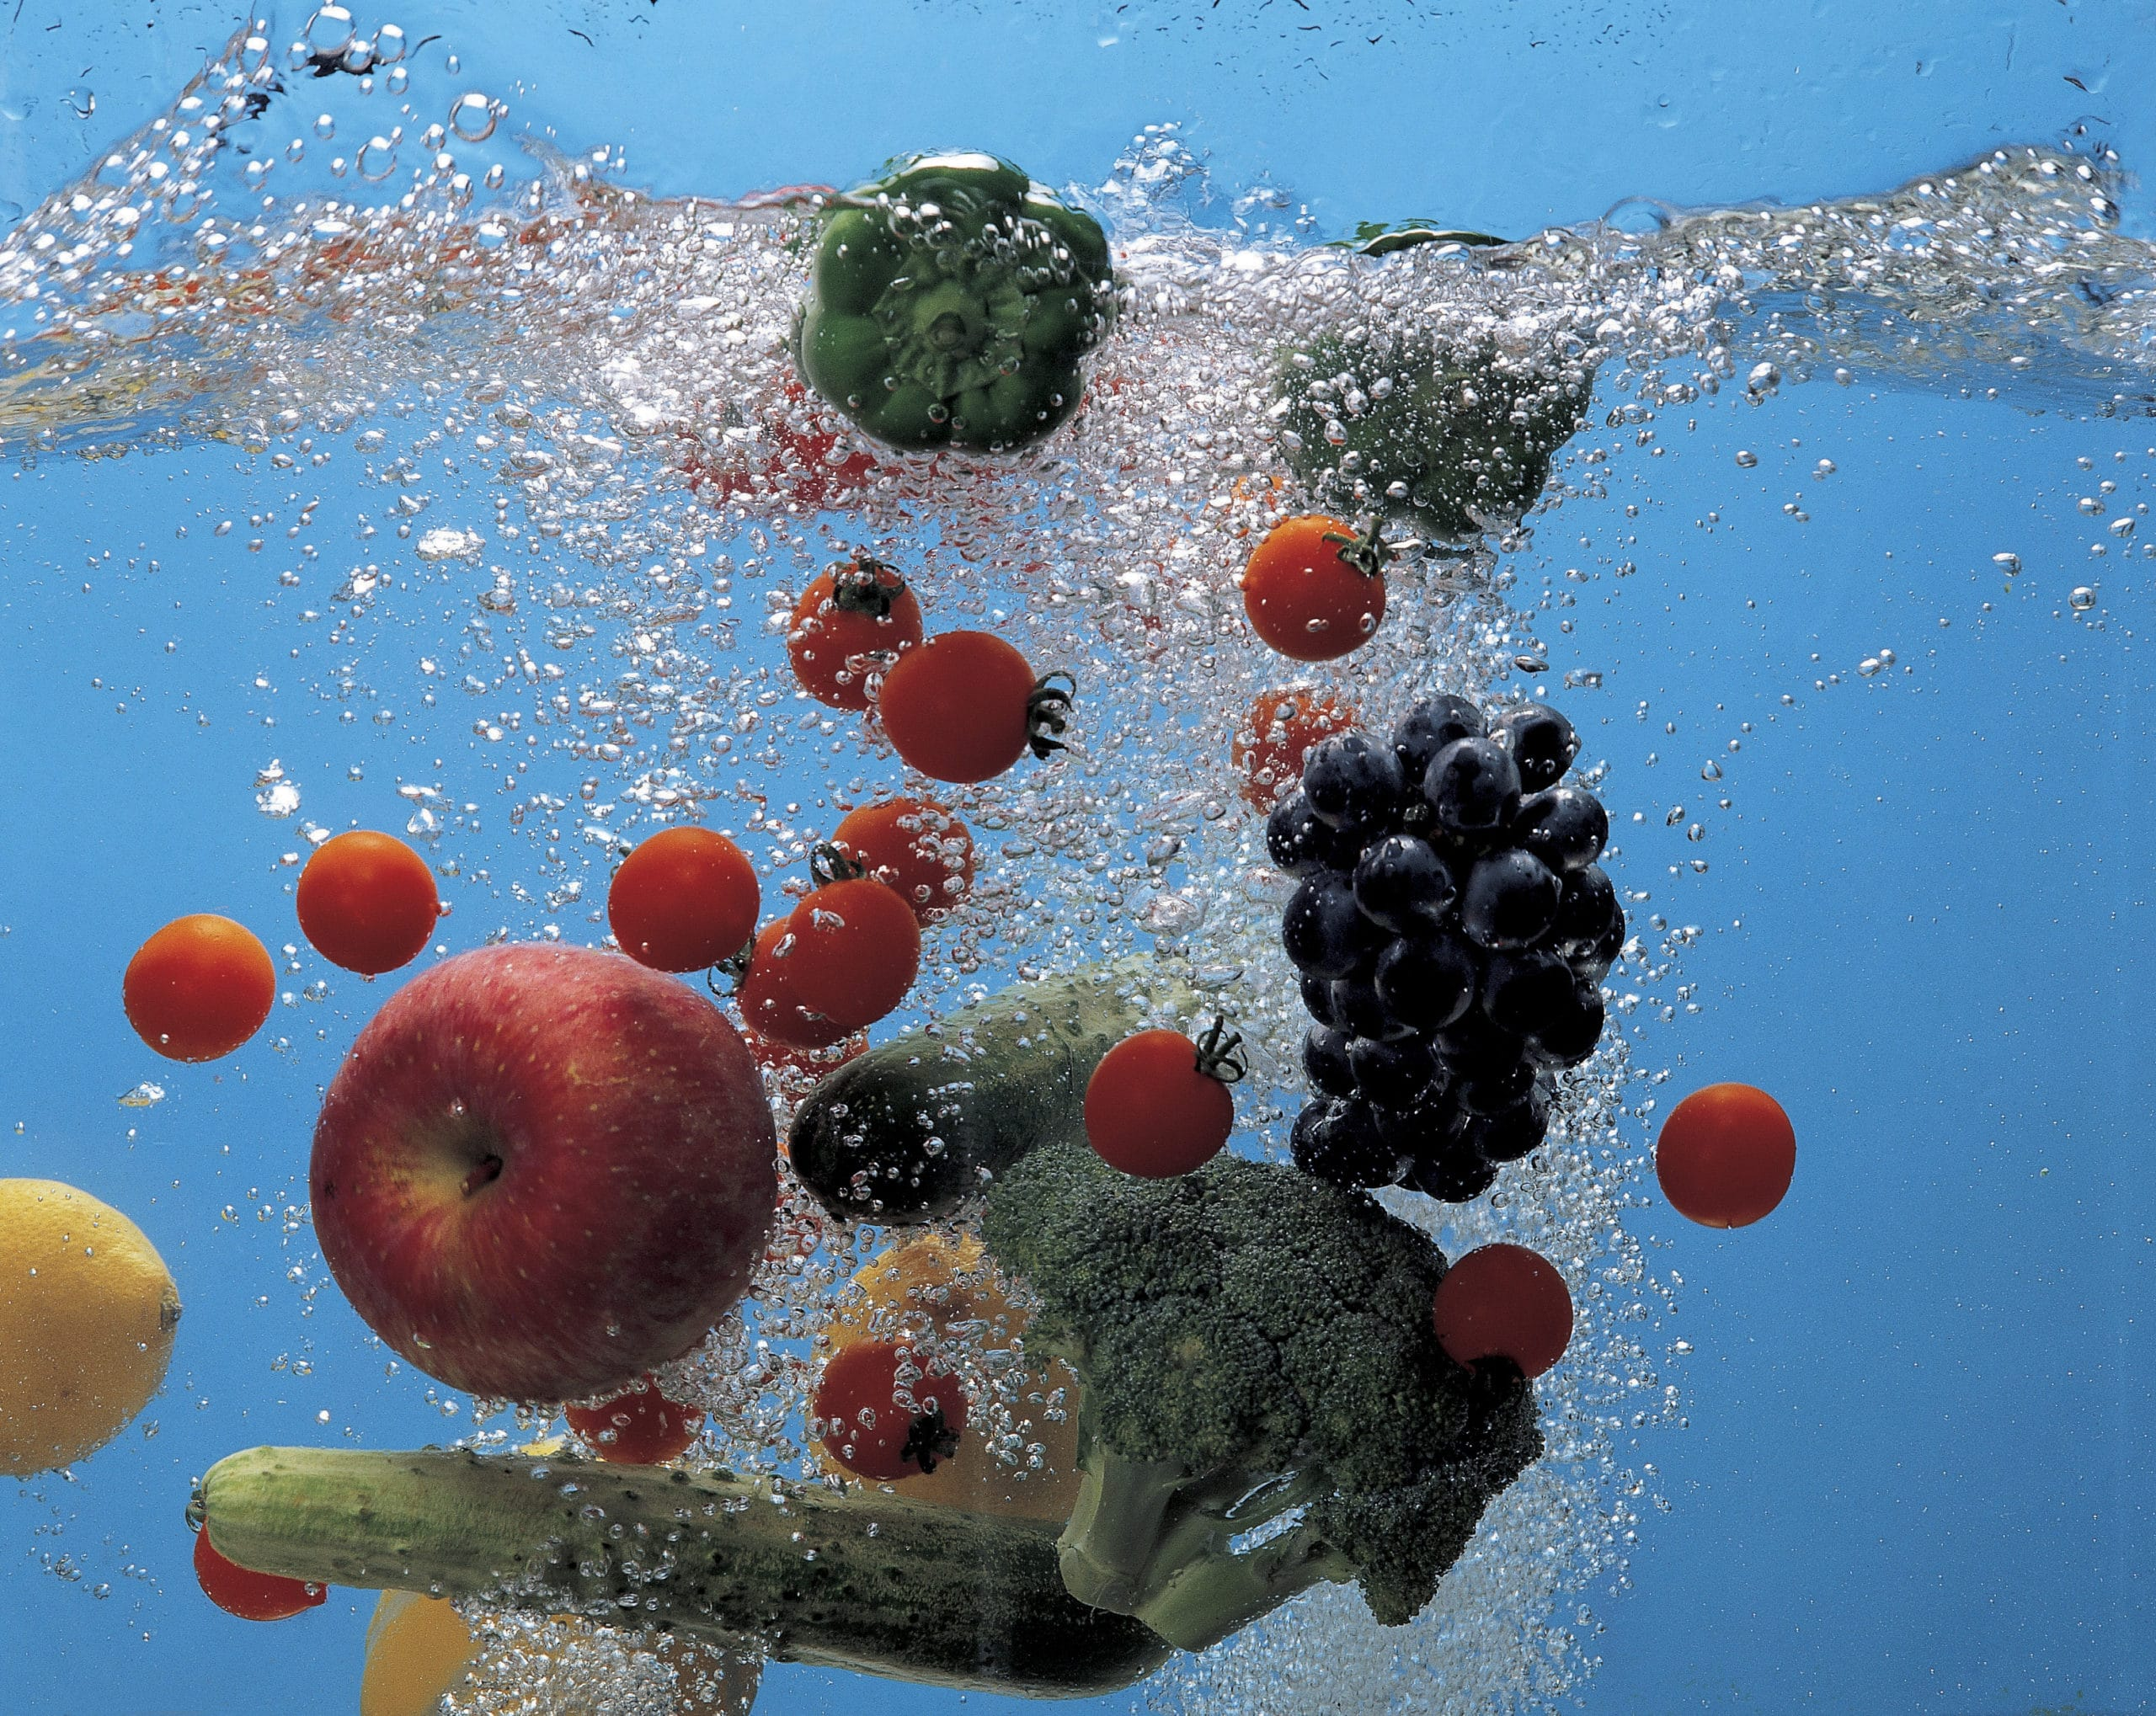 Be food safe always wash fruits and vegetables chatham kent public health unit - Foods never wash cooking ...